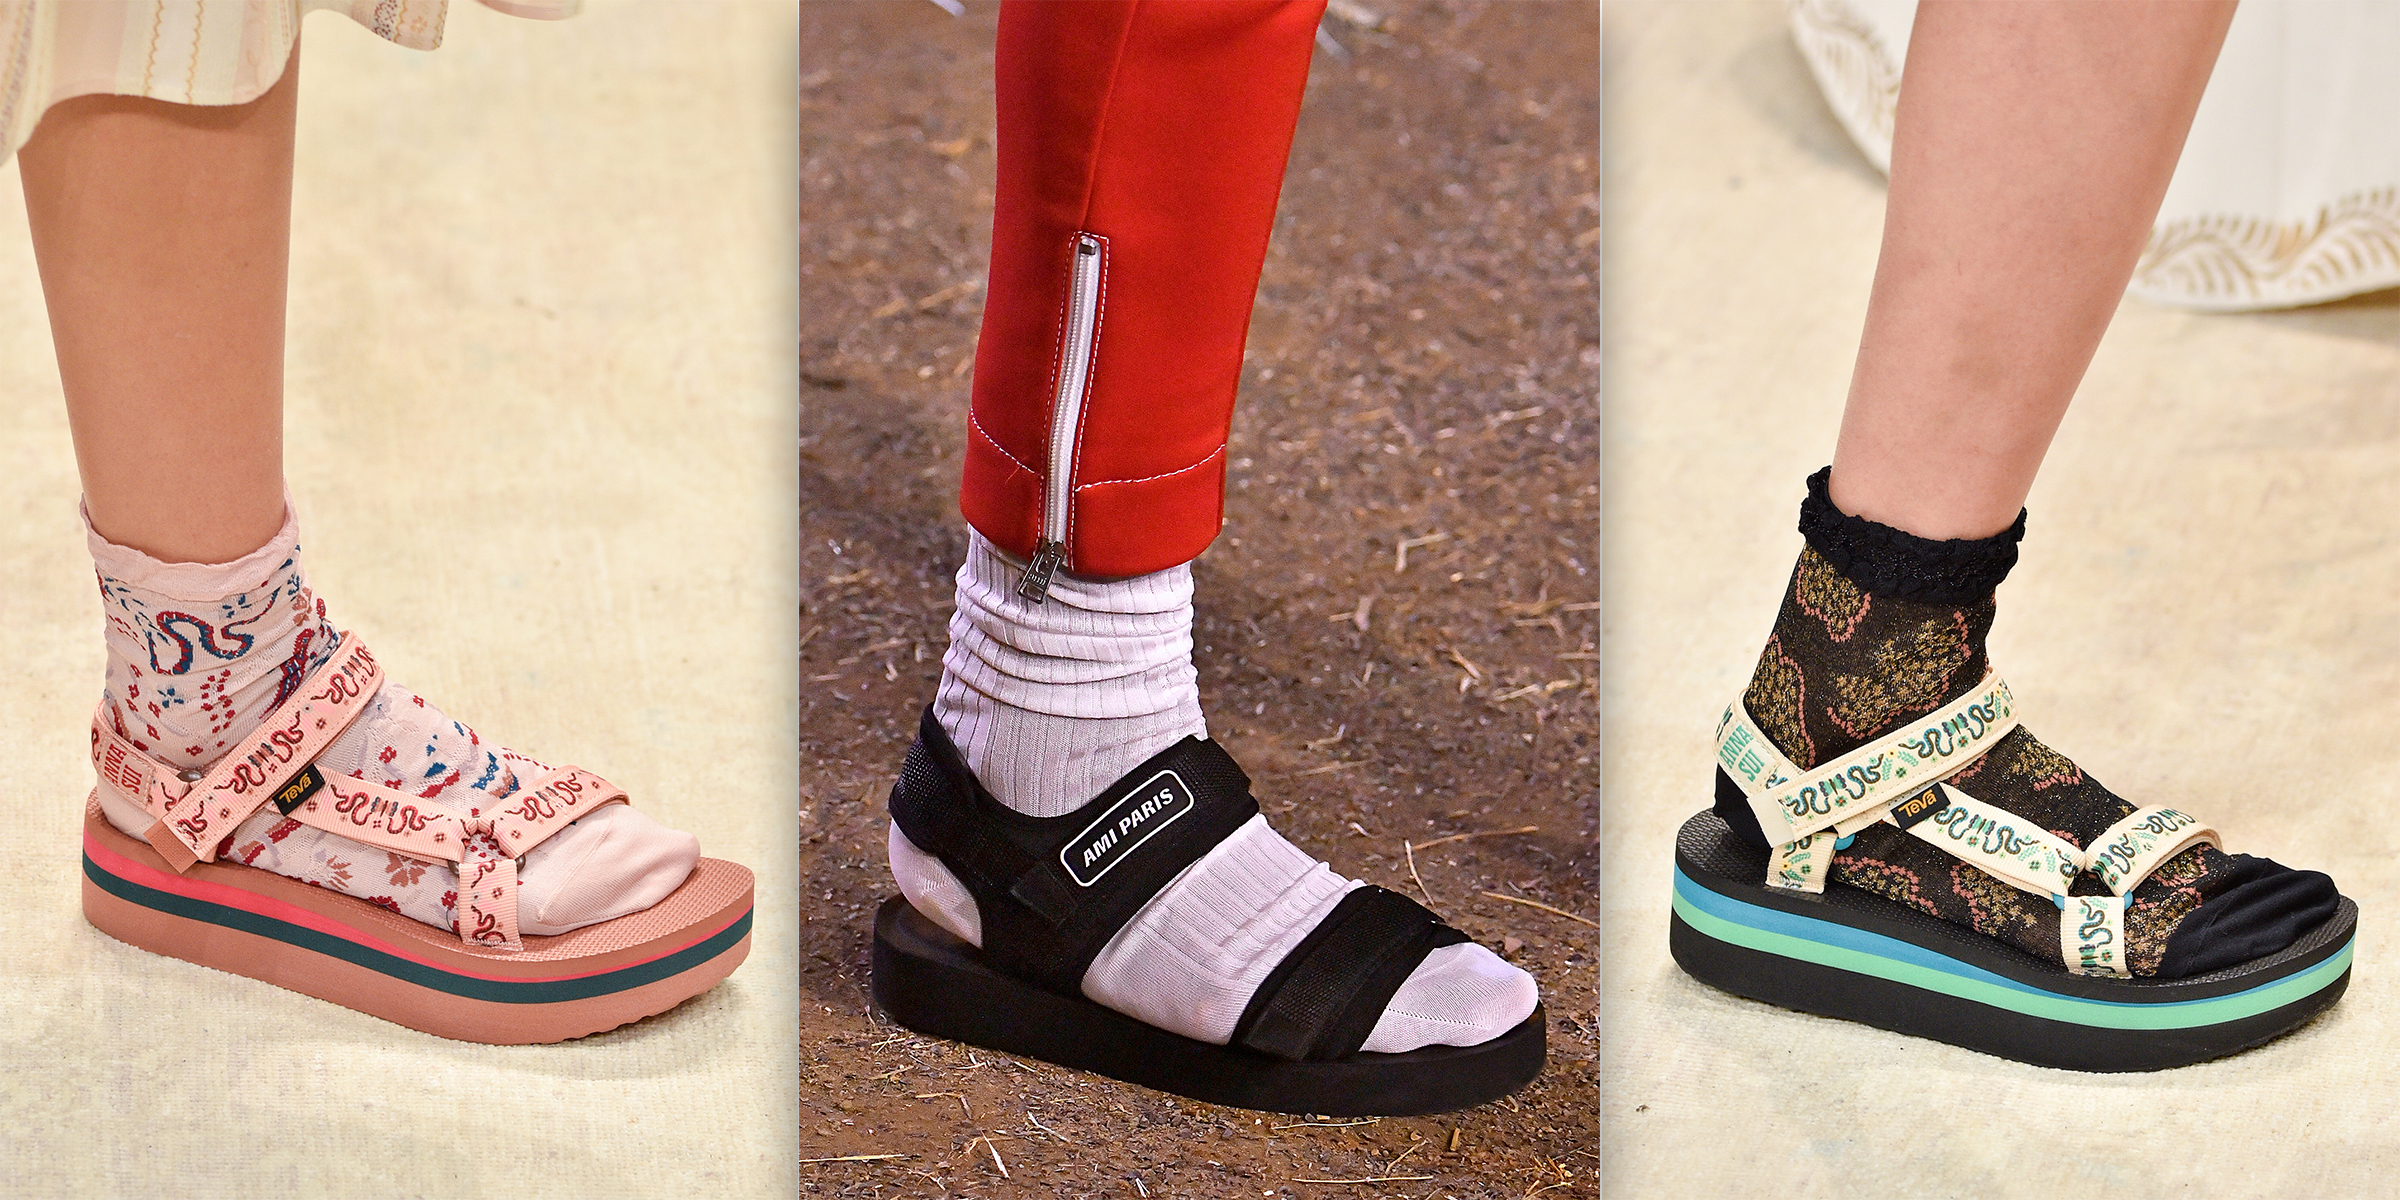 tourist-sandals-trend-today-main2-190205